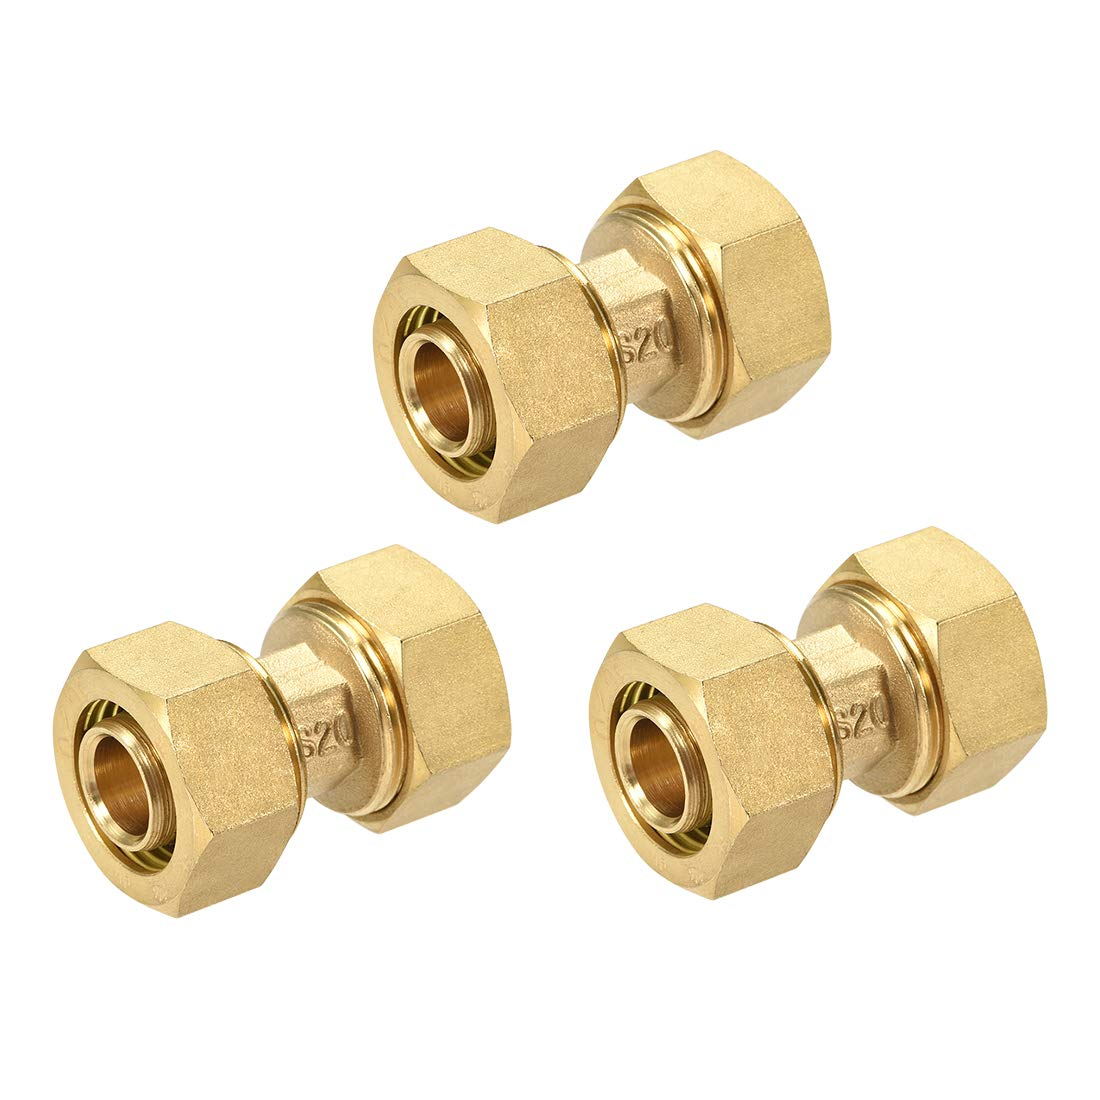 uxcell Brass Compression Tube Fitting Connector Adapter for 16mm Tube ID 20mm Tube OD Gold Tone 3pcs